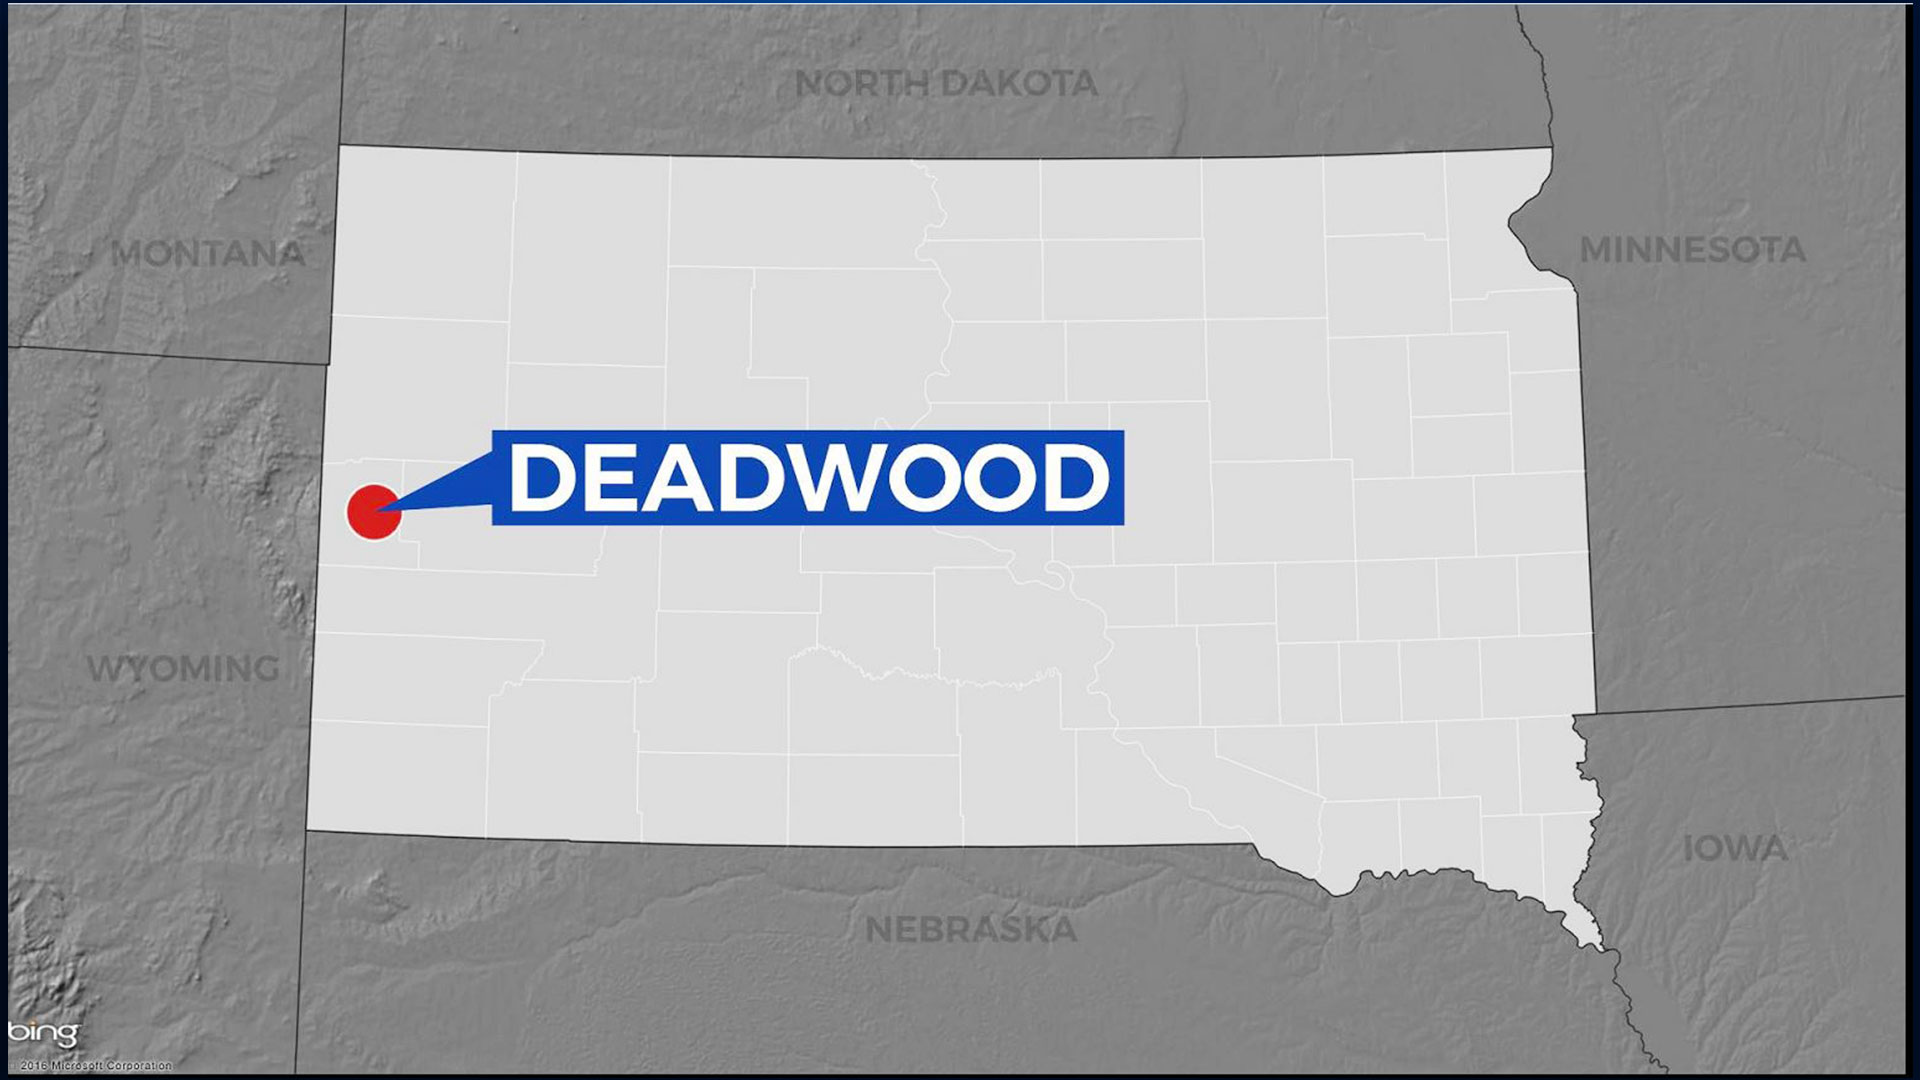 KELO Deadwood Locator